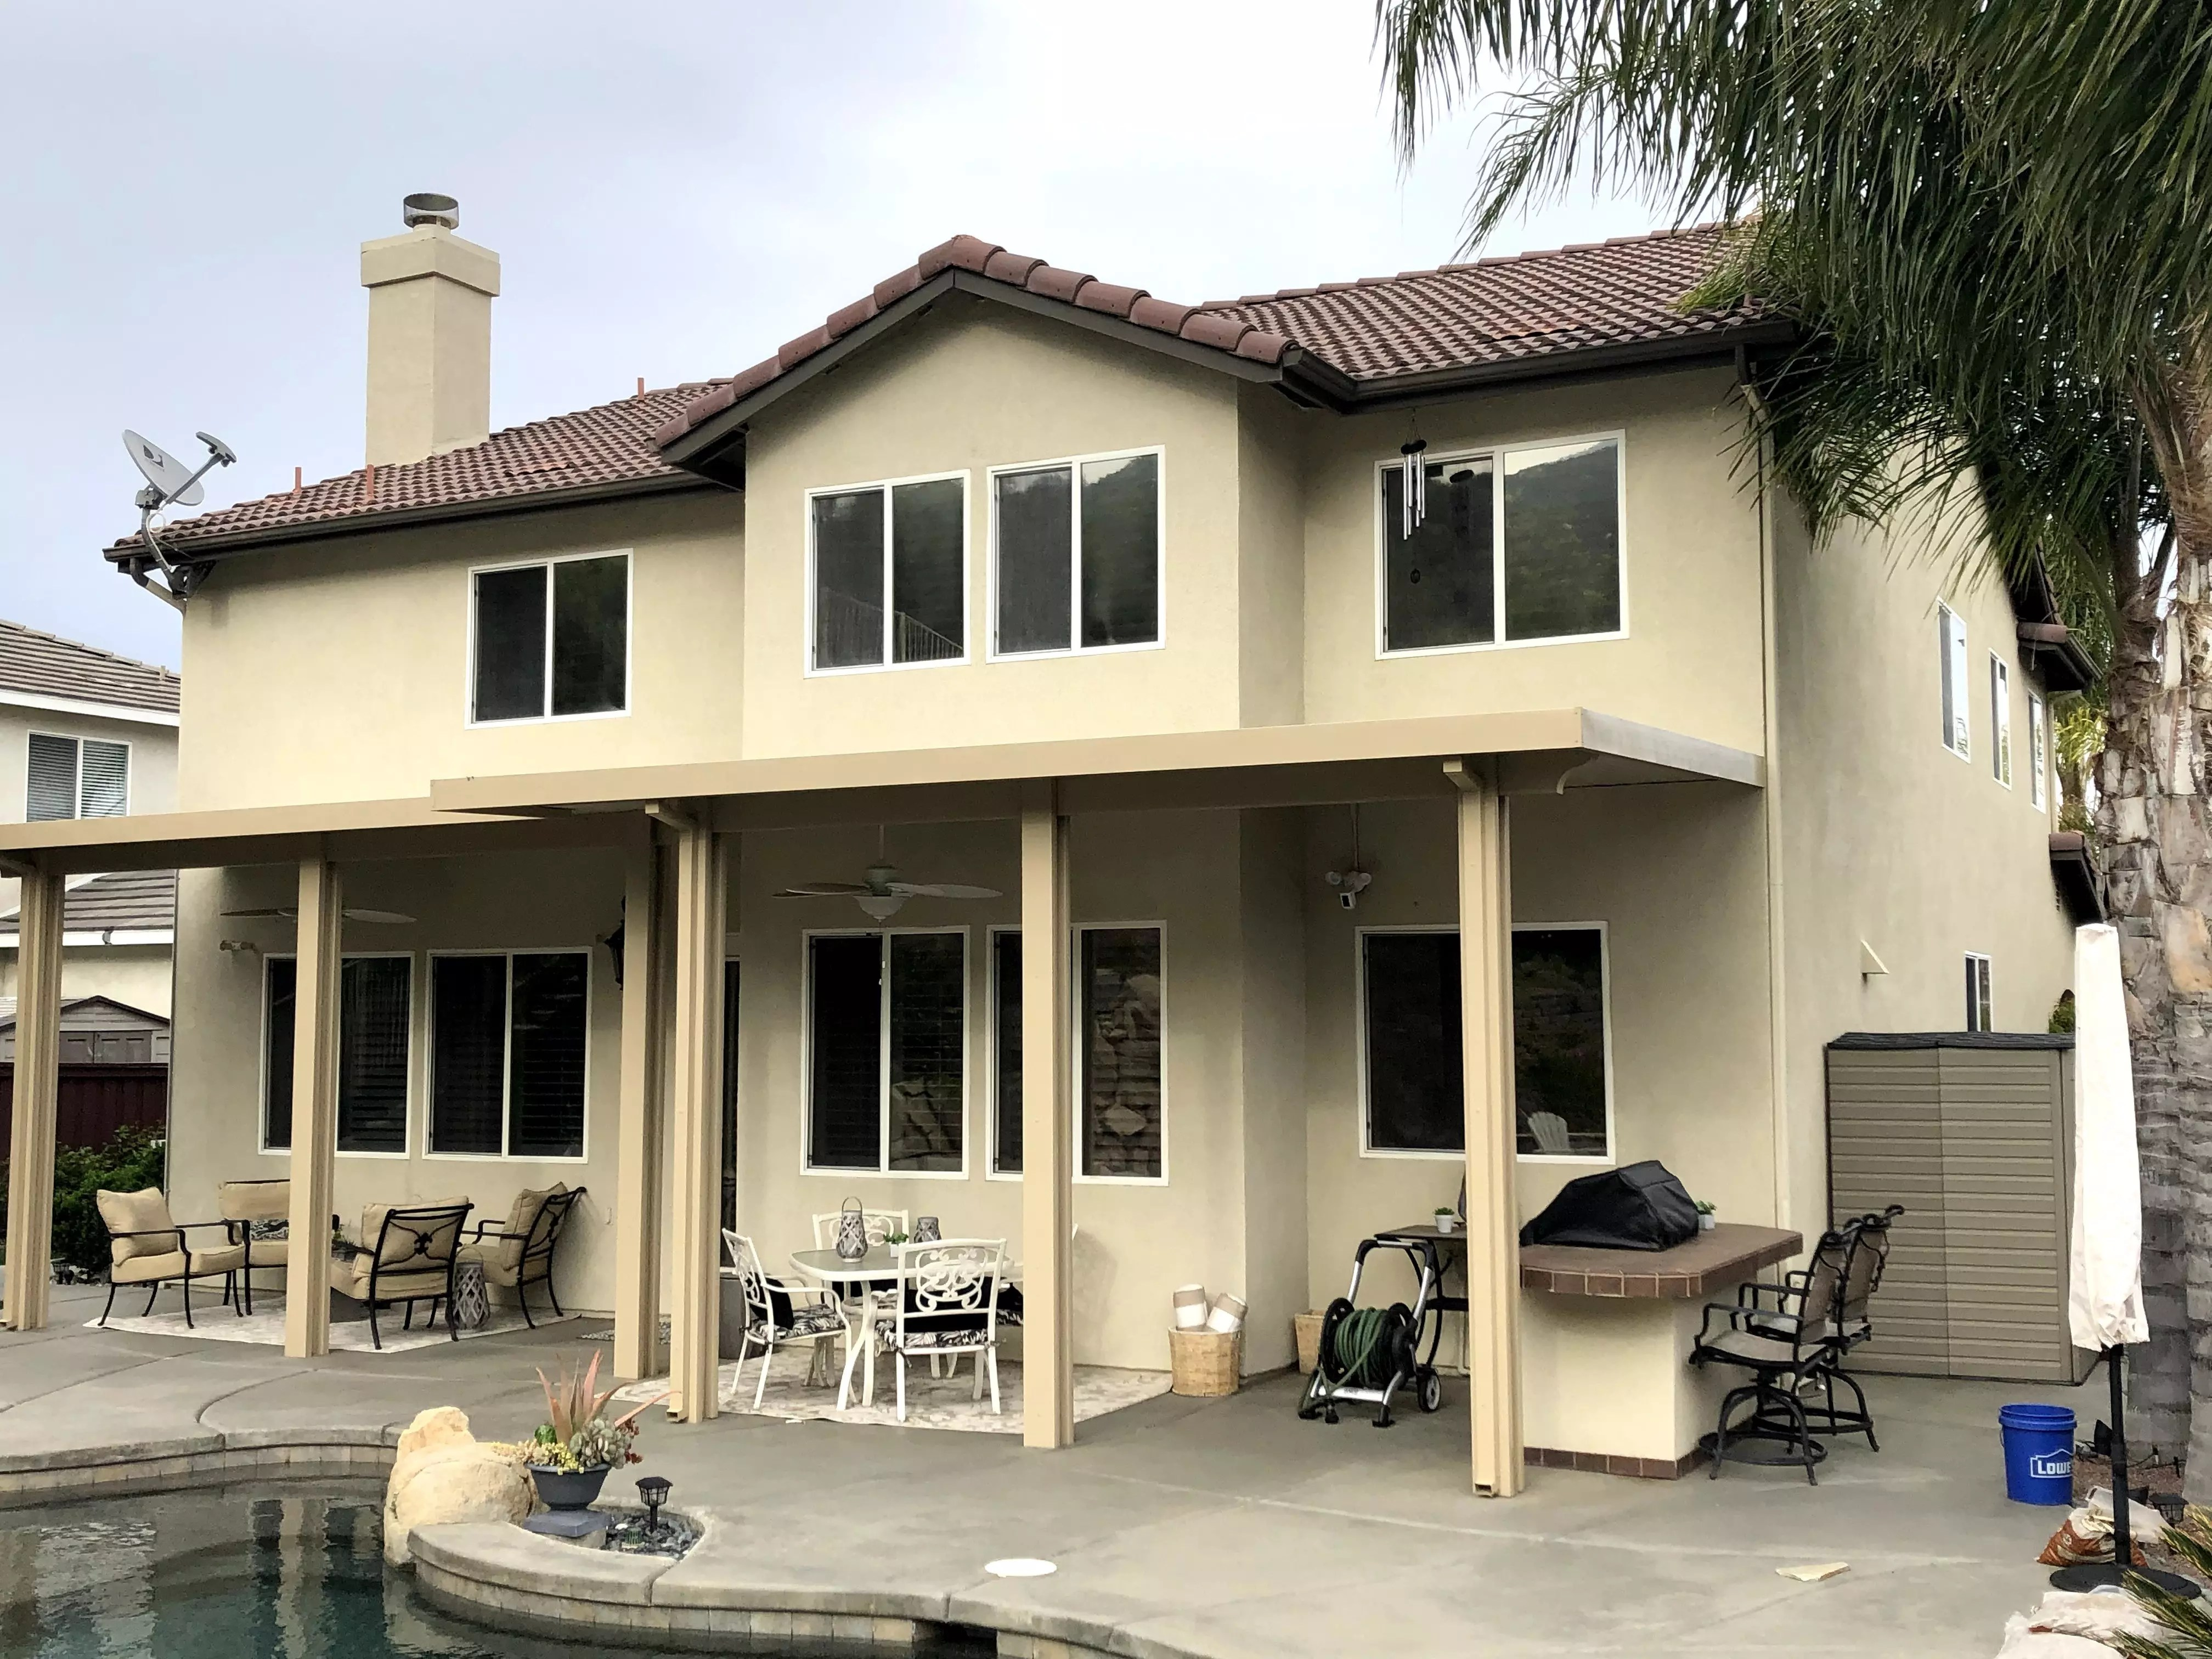 Dual Reflective Window film installation on a home in murrieta ca | Home window tinting murrieta